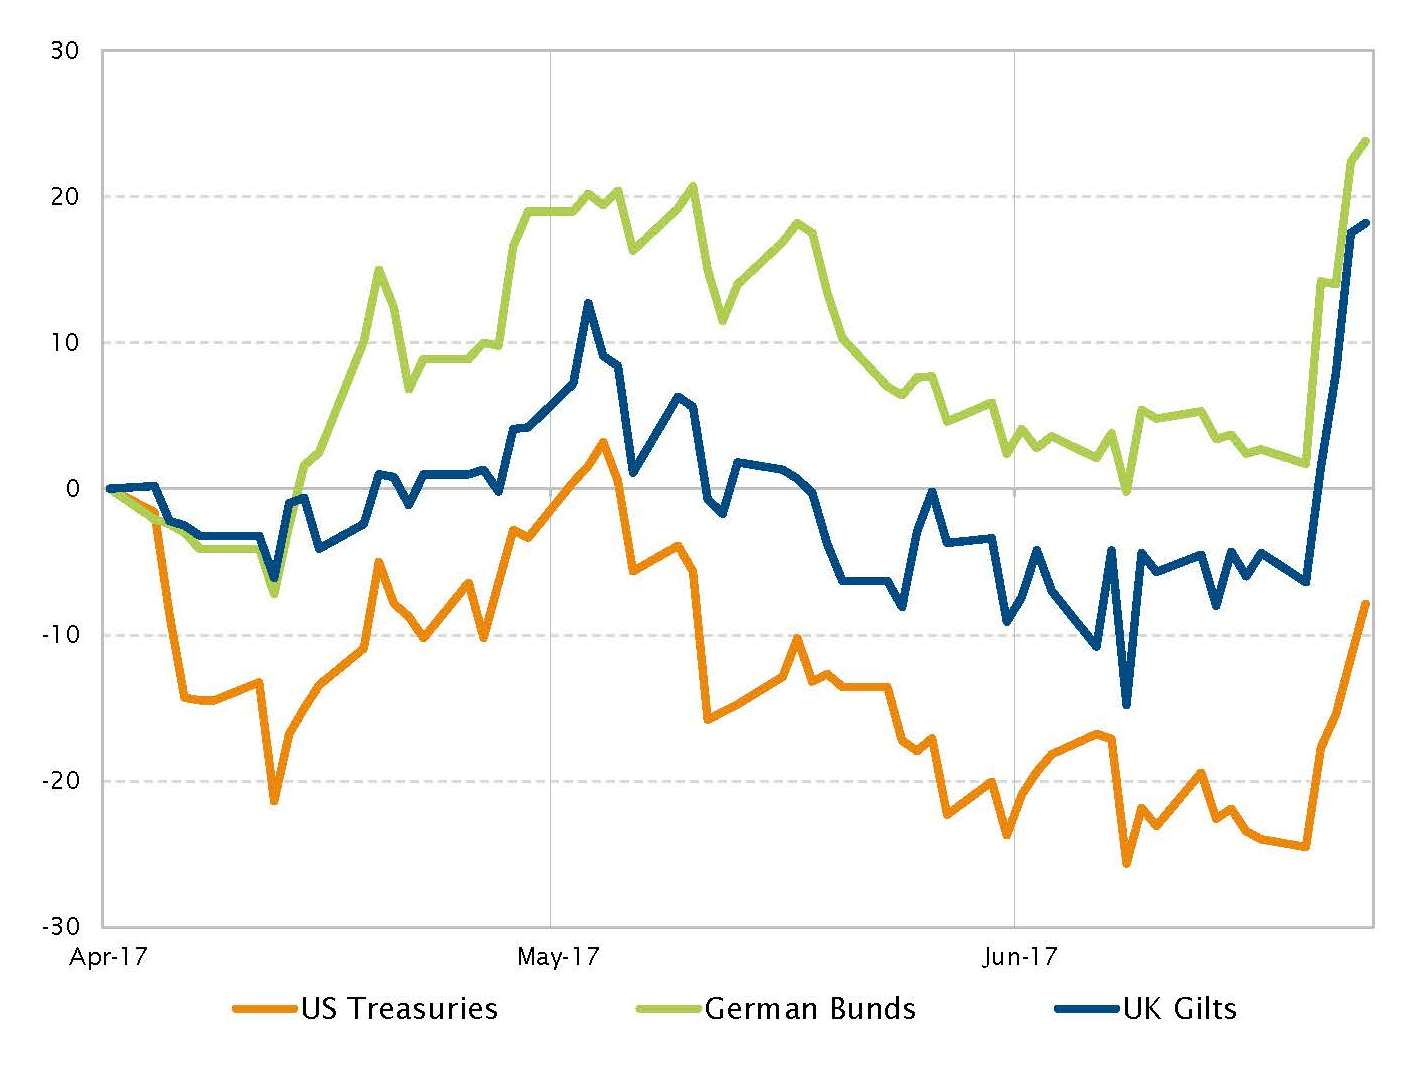 Change in 10-year sovereign bond yields